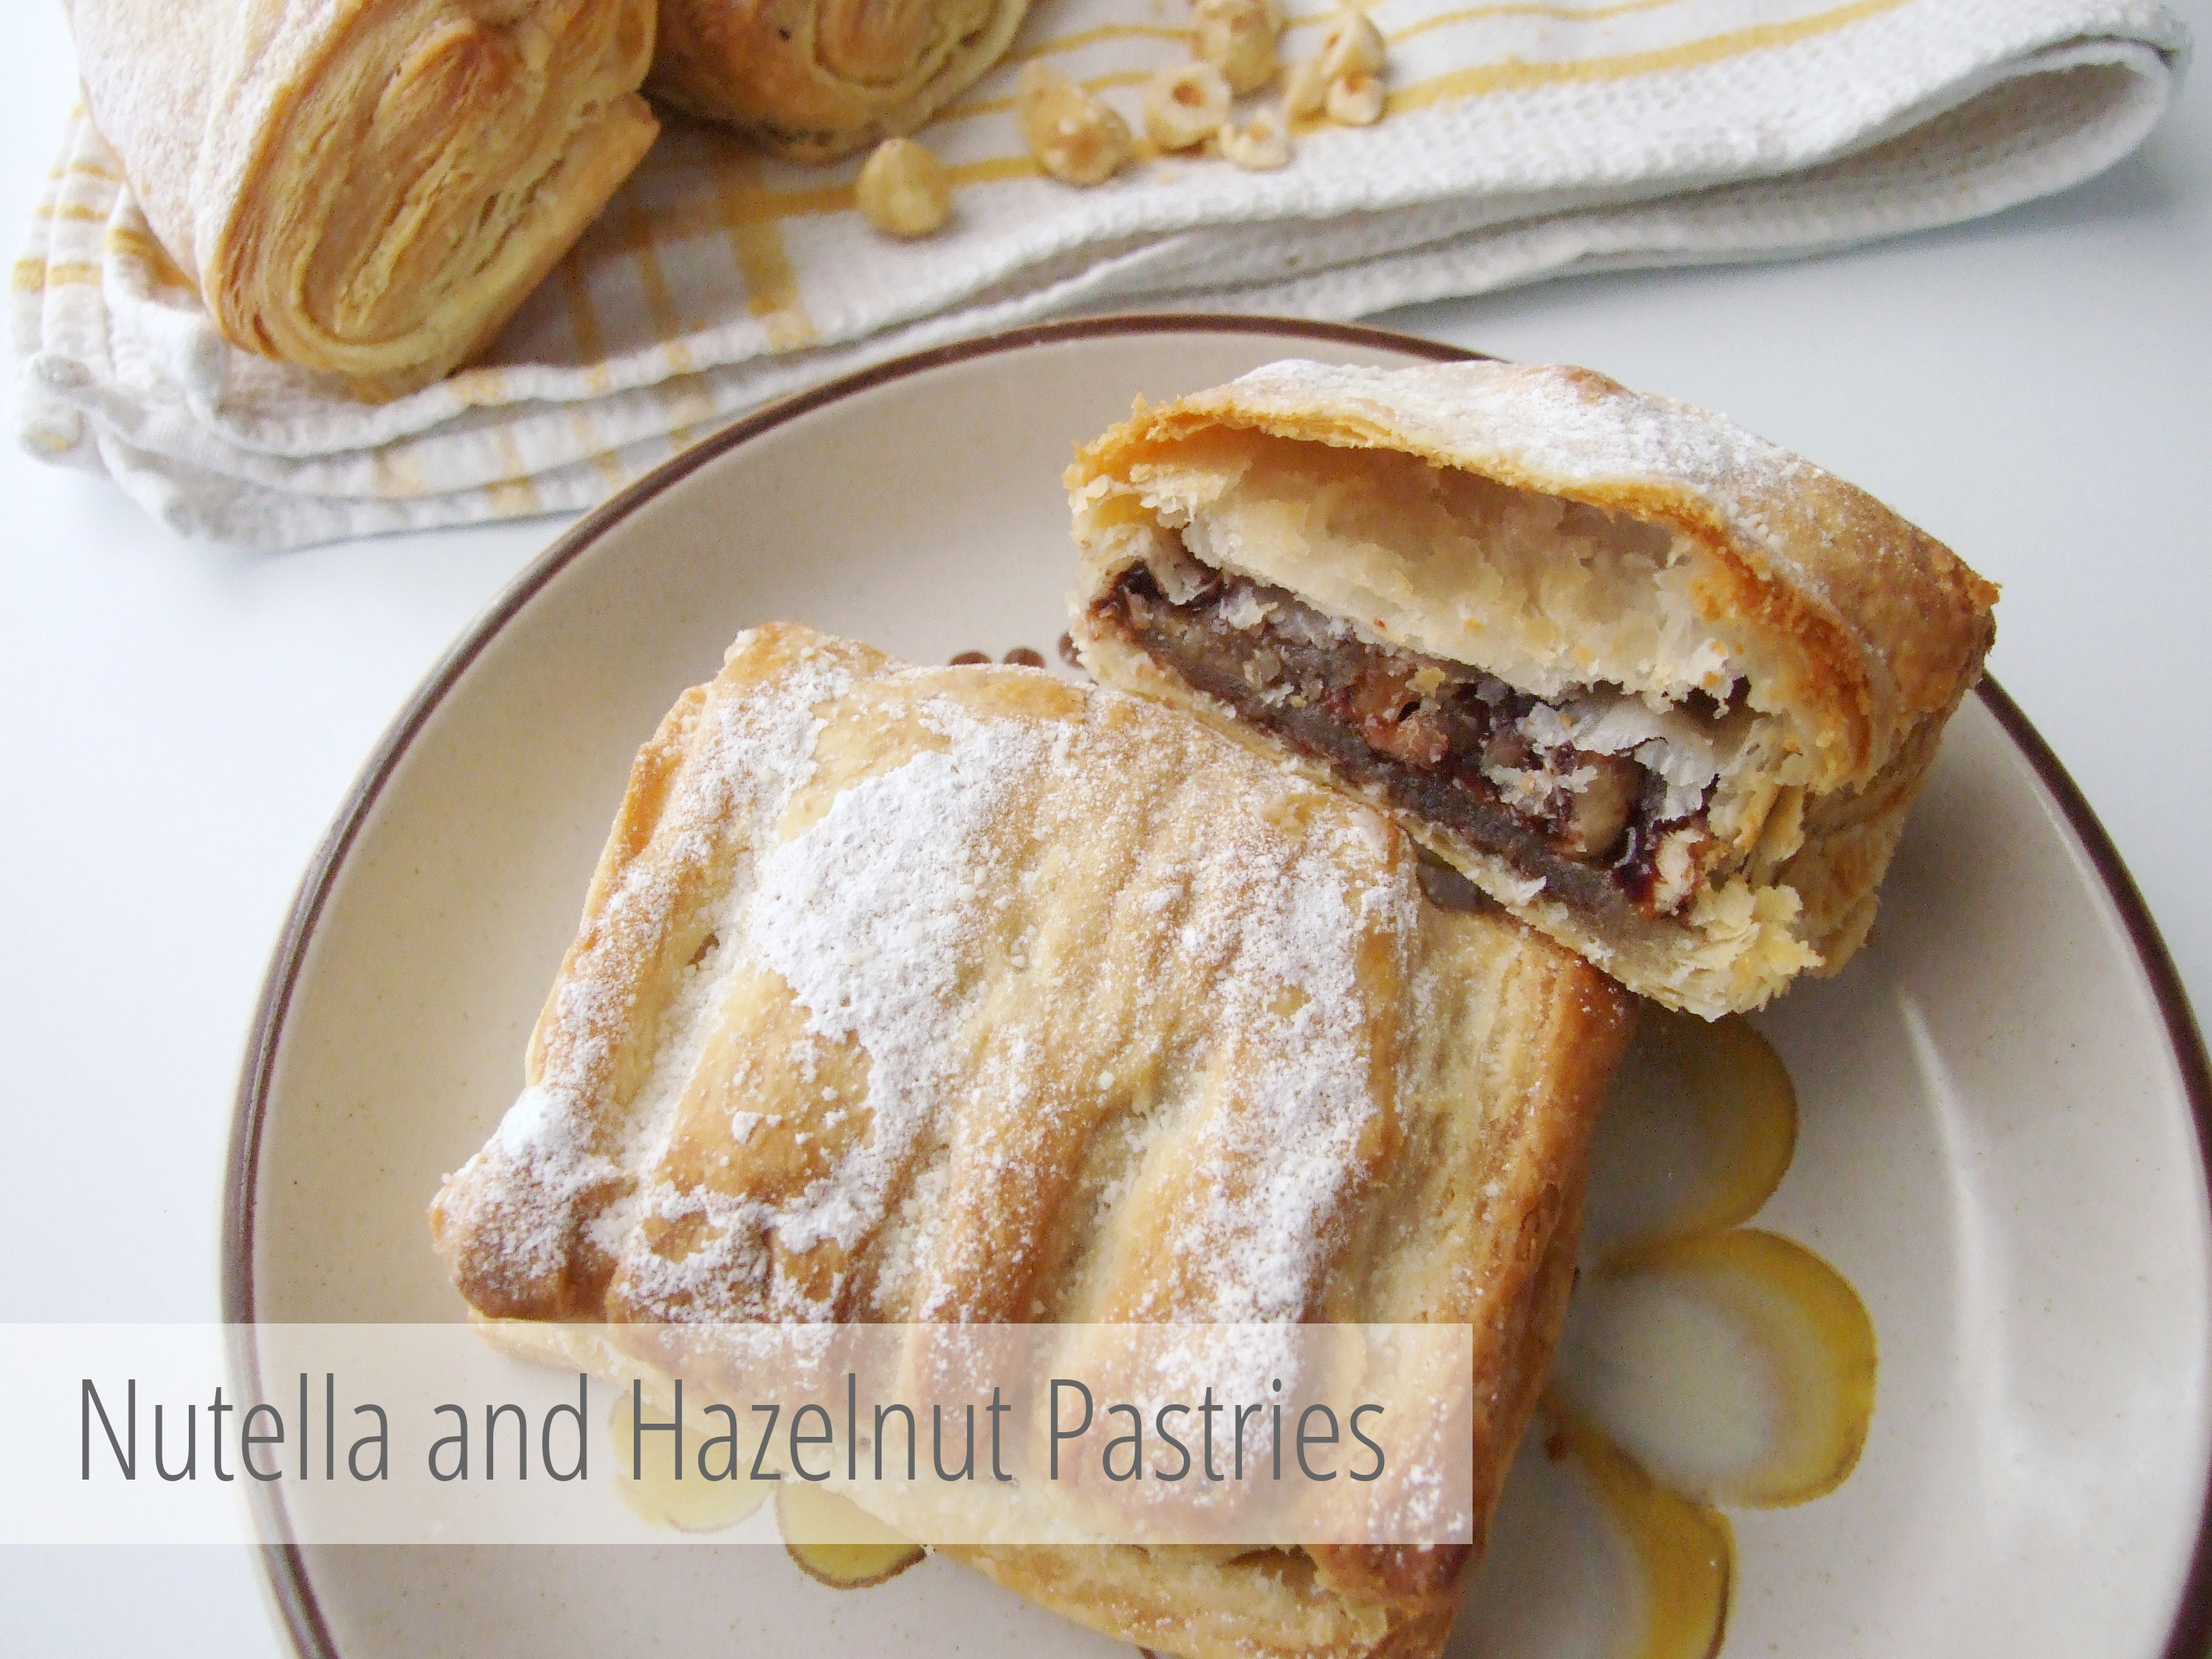 Picture of Nutella and Hazelnut Pastries.